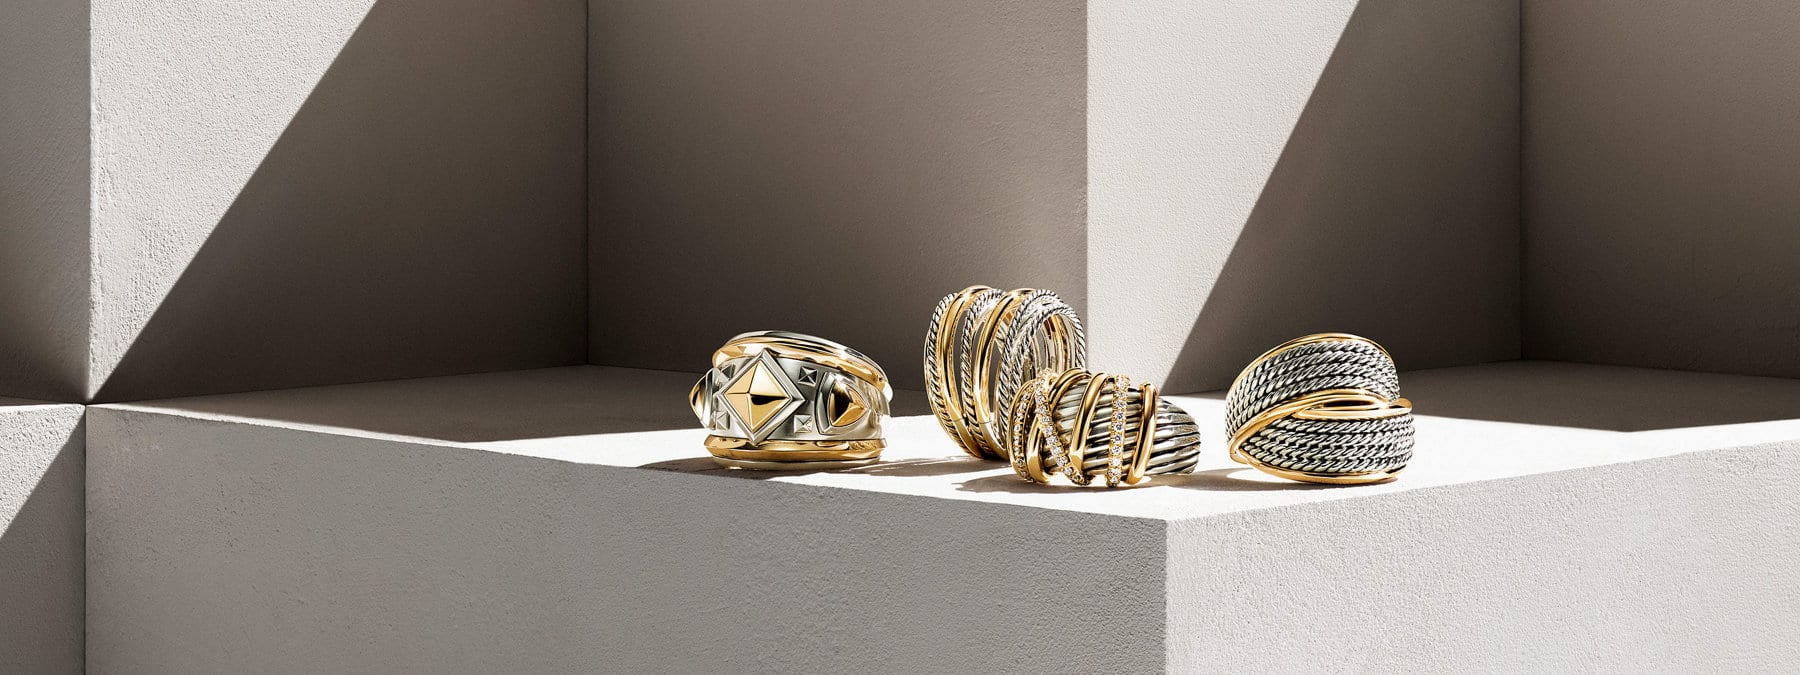 A color photograph shows four David Yurman rings from the Bold Renaissance, Crossover, Helena and DY Origami collections atop a beige-hued stone shelf with hard diagonal shadows. The women's rings are crafted from sterling silver with 18K yellow gold details. The third ring from the left features threads of pavé white diamonds.